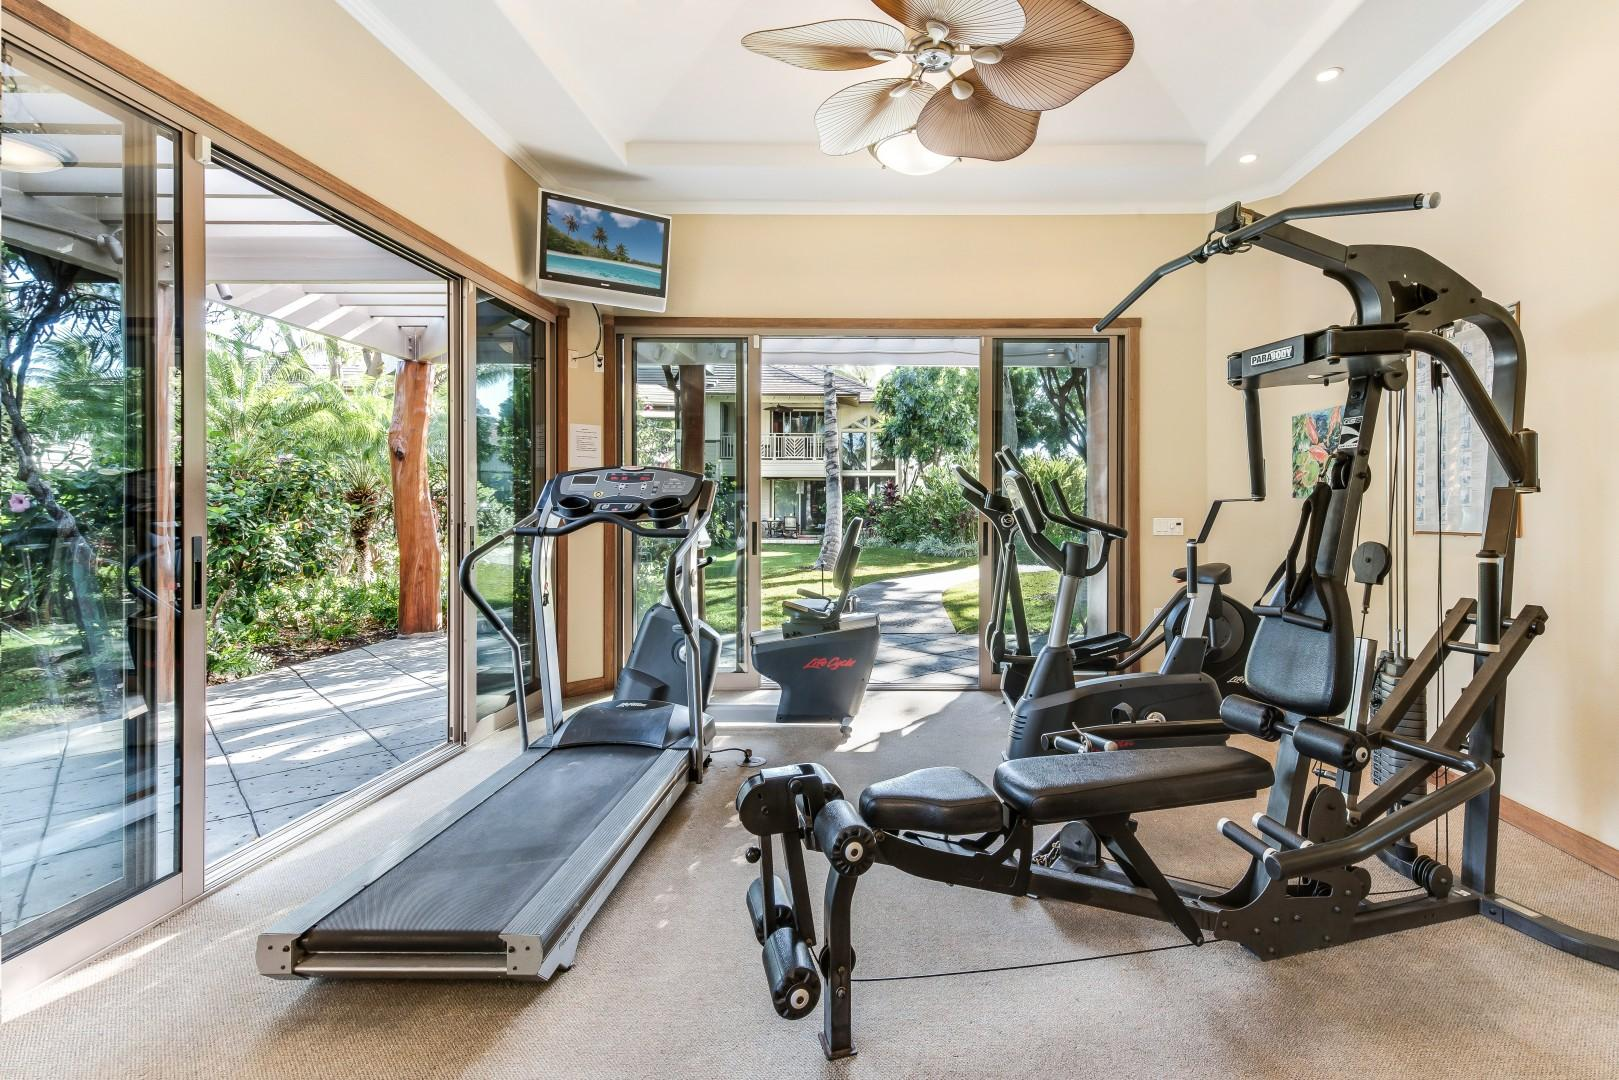 Air-Conditioned Fitness Room w/ Glass Doors Brings the Beautiful Outside In